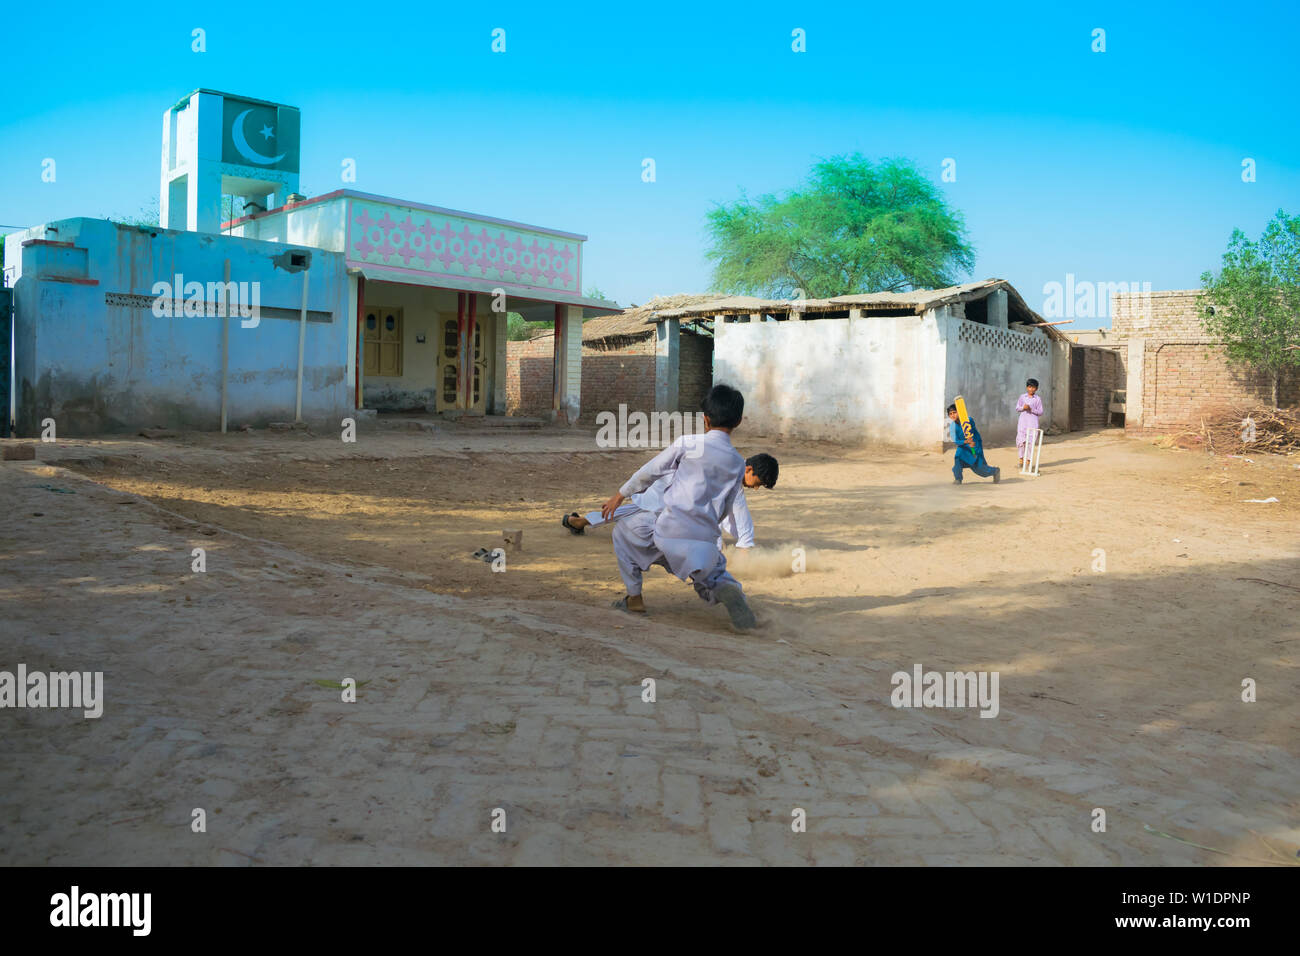 rahimyar khan,punjab,pakistan-july 1,2019:some local boys playing cricket in a village,fielder is trying to catch the ball. - Stock Image